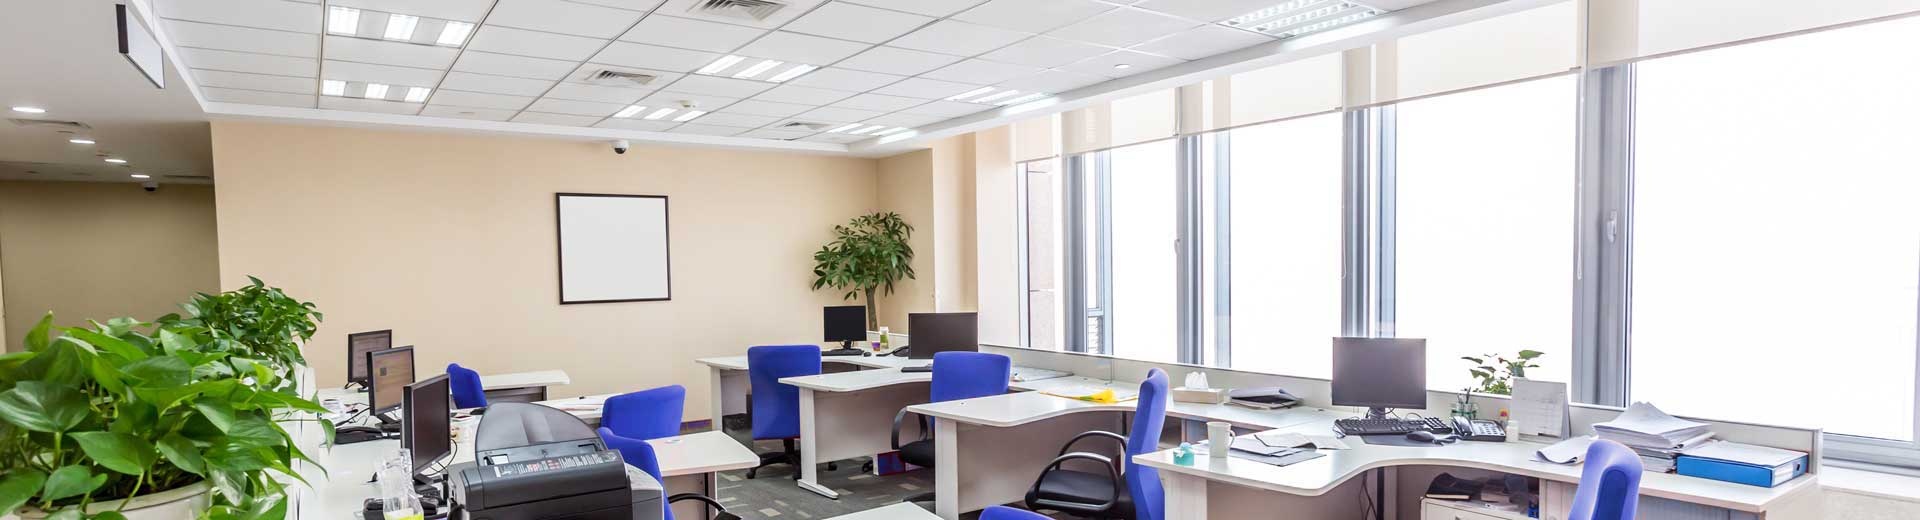 Led Office Lights Office Led Lighting Panels Suspended Fittings Redline Led